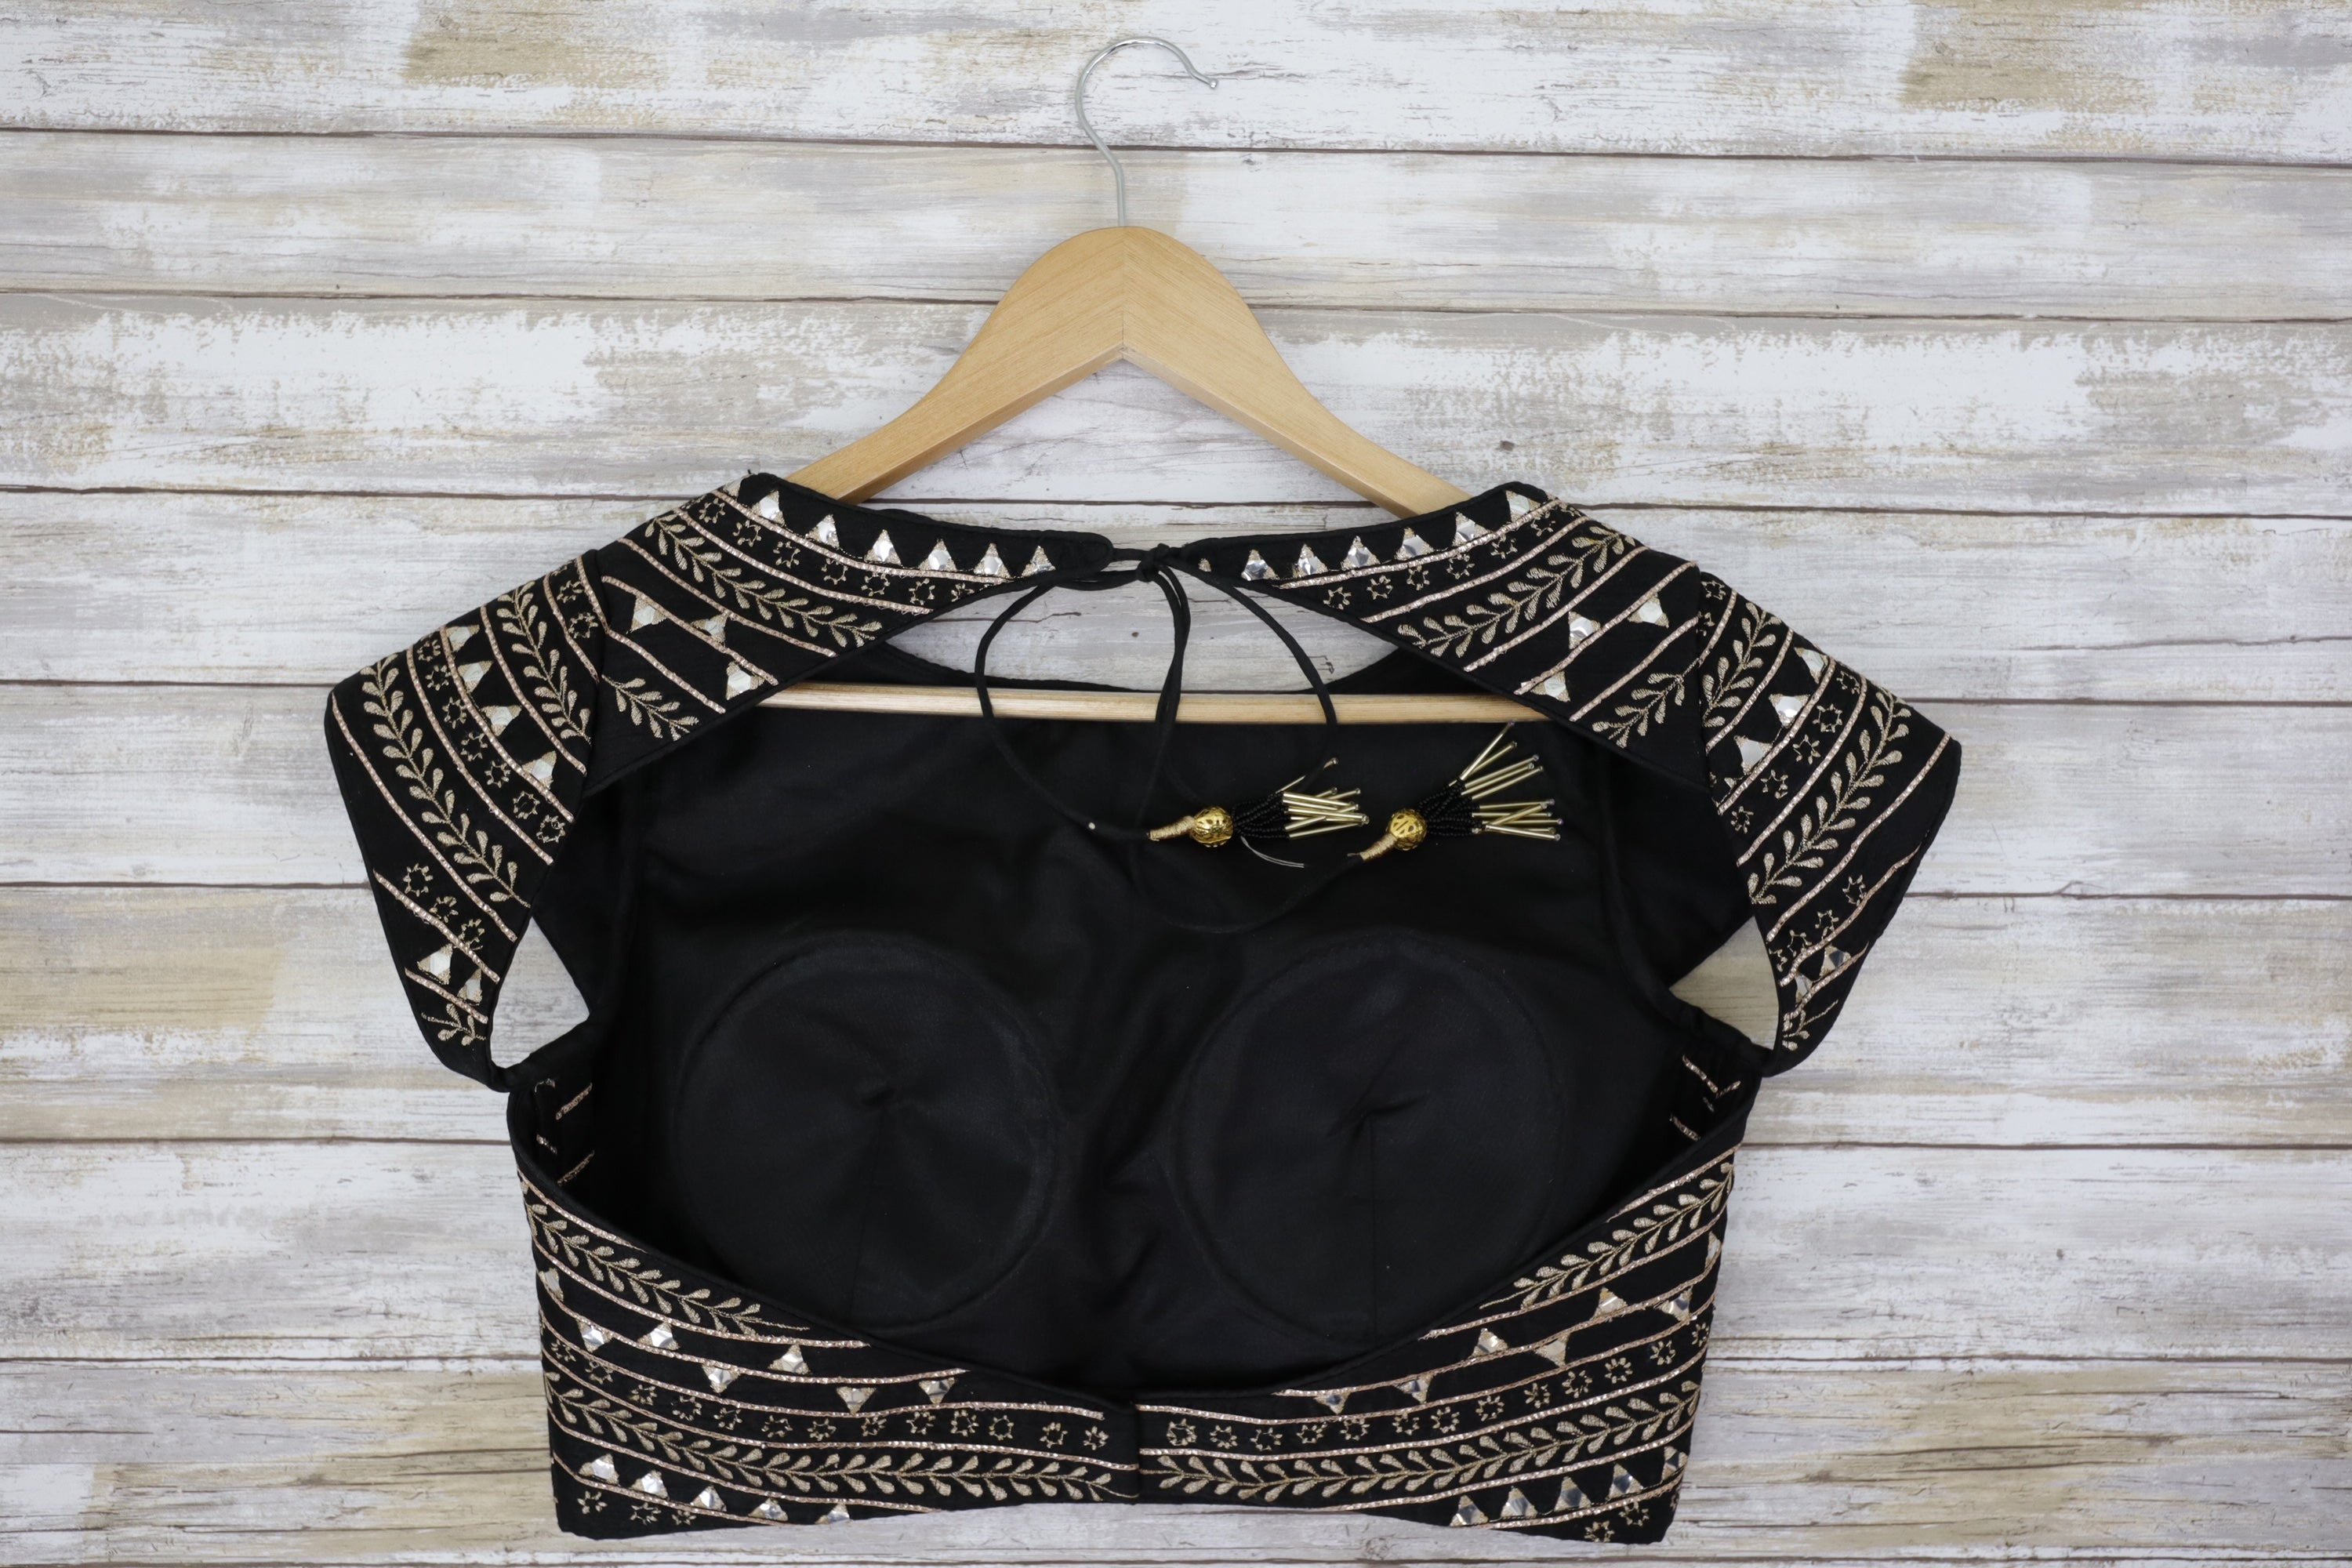 Black and gold blouse rental that features an open back, gold embroidery and shimmering mirror work.